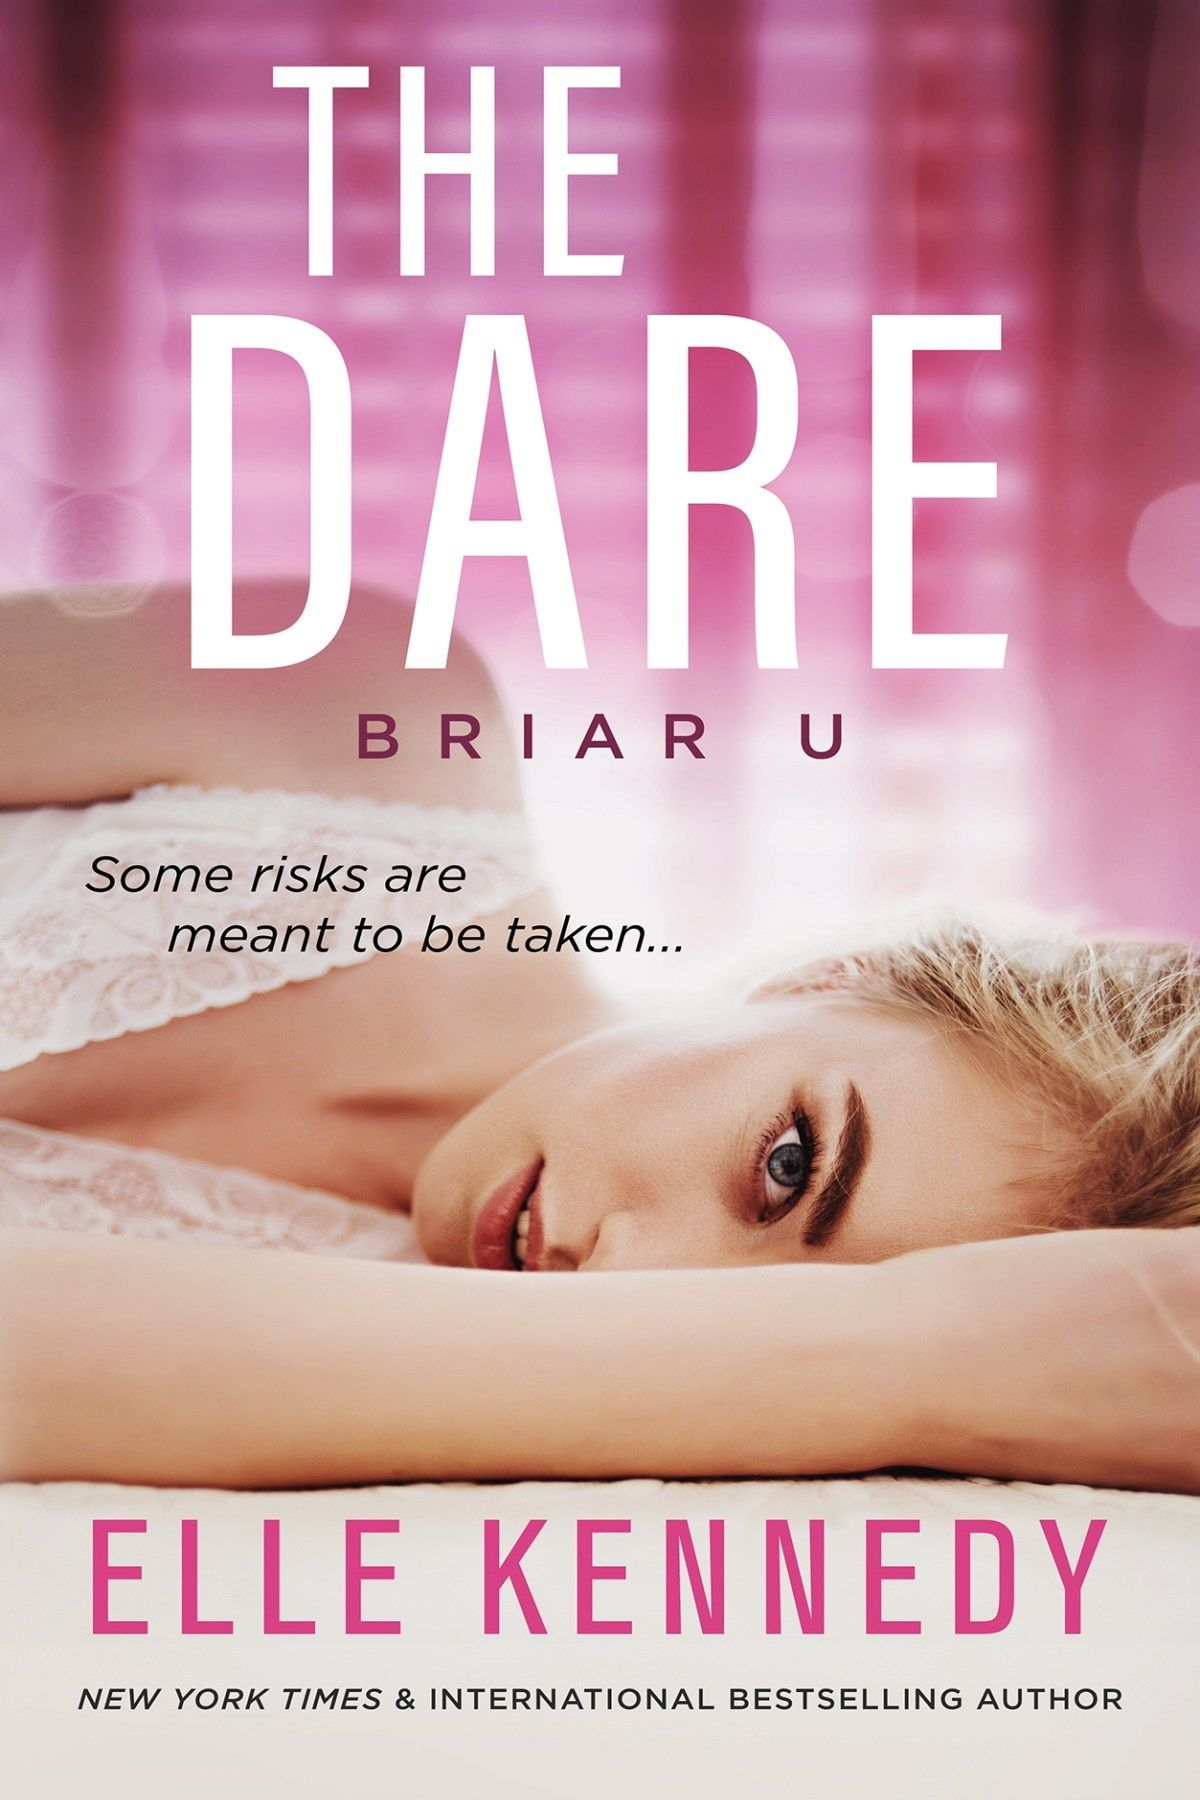 Pdf The Dare Briar U 4 By Elle Kennedy Elle Kennedy Romance Books U Book